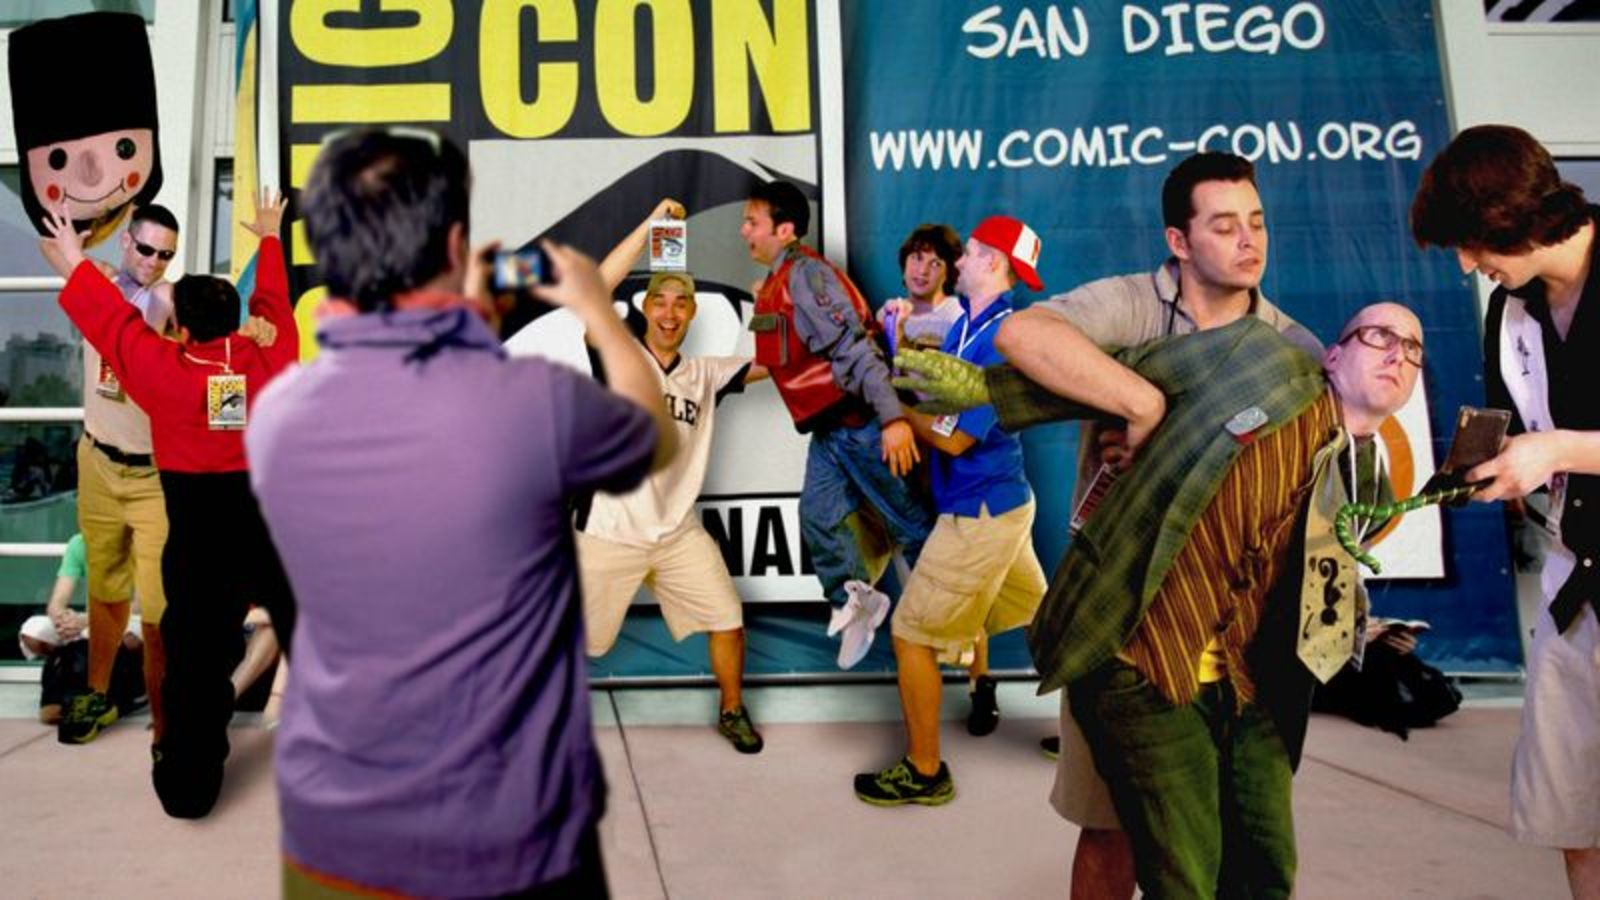 Comic-Con Once Again Marred By Increasingly Popular Bully-Con https://t.co/du4aT9AAam https://t.co/iD64AmLMKw